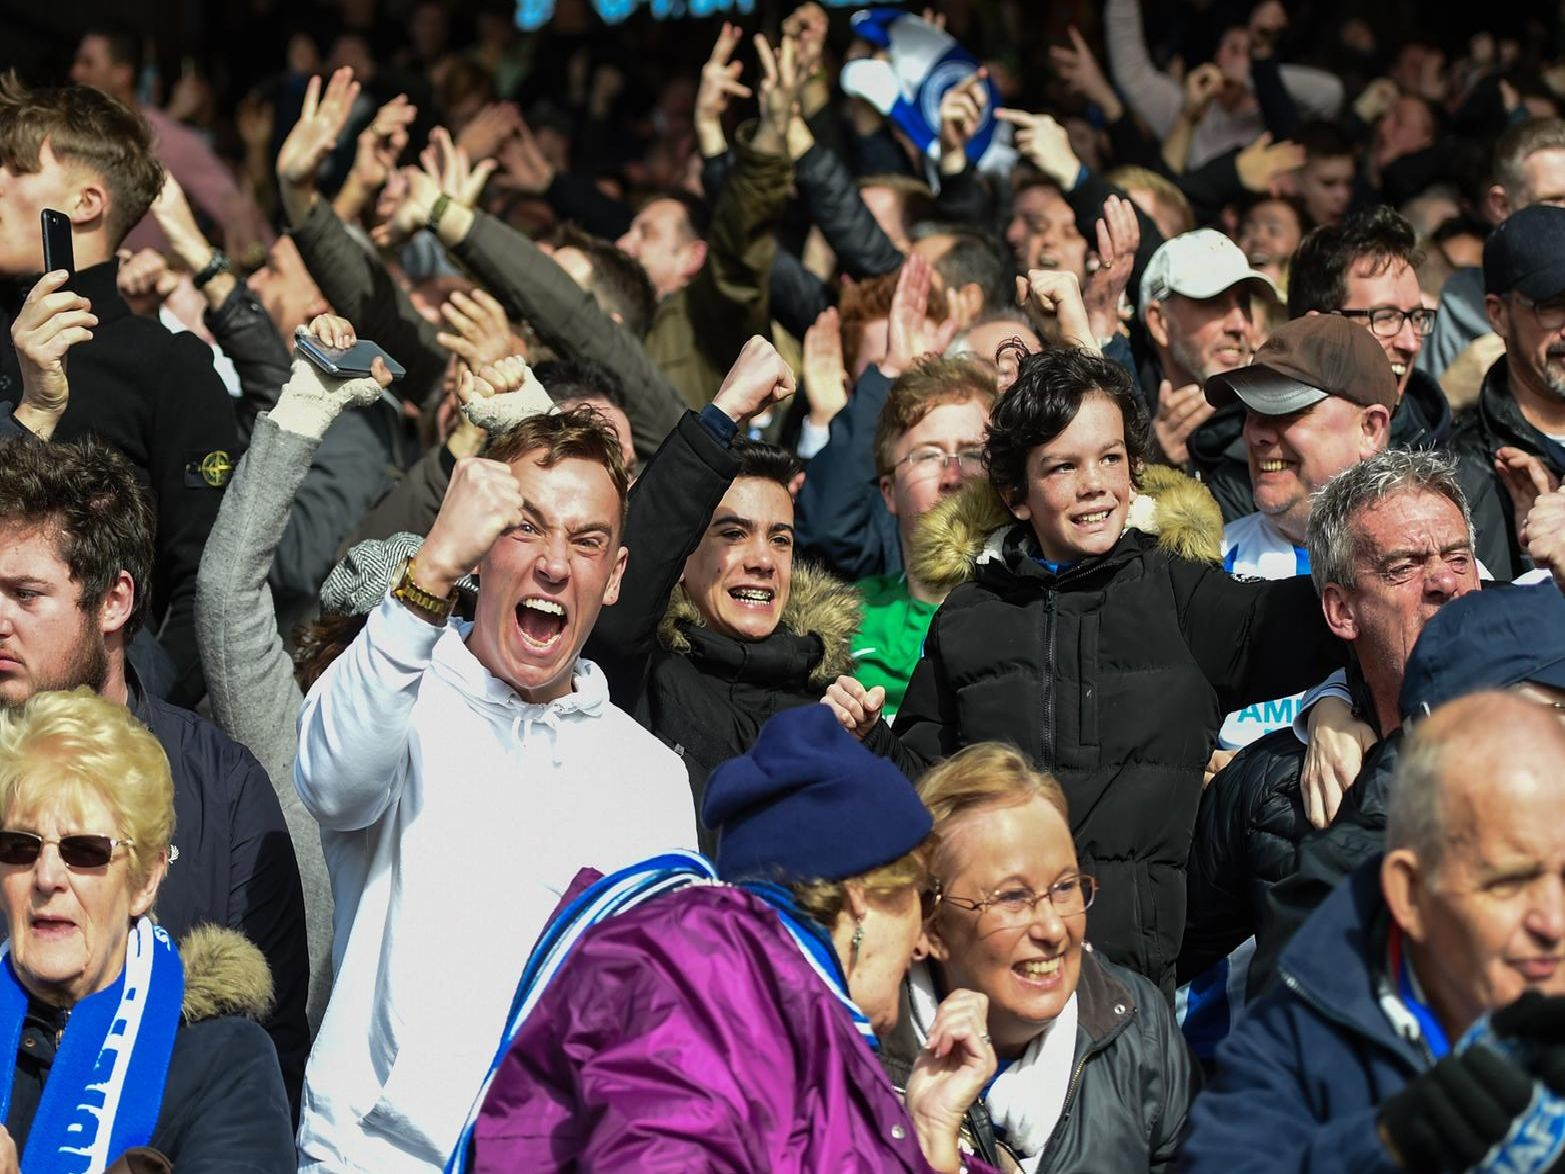 Brighton fans celebrate the 2-1 victory at Crystal Palace. Picture by PW Sporting Photography